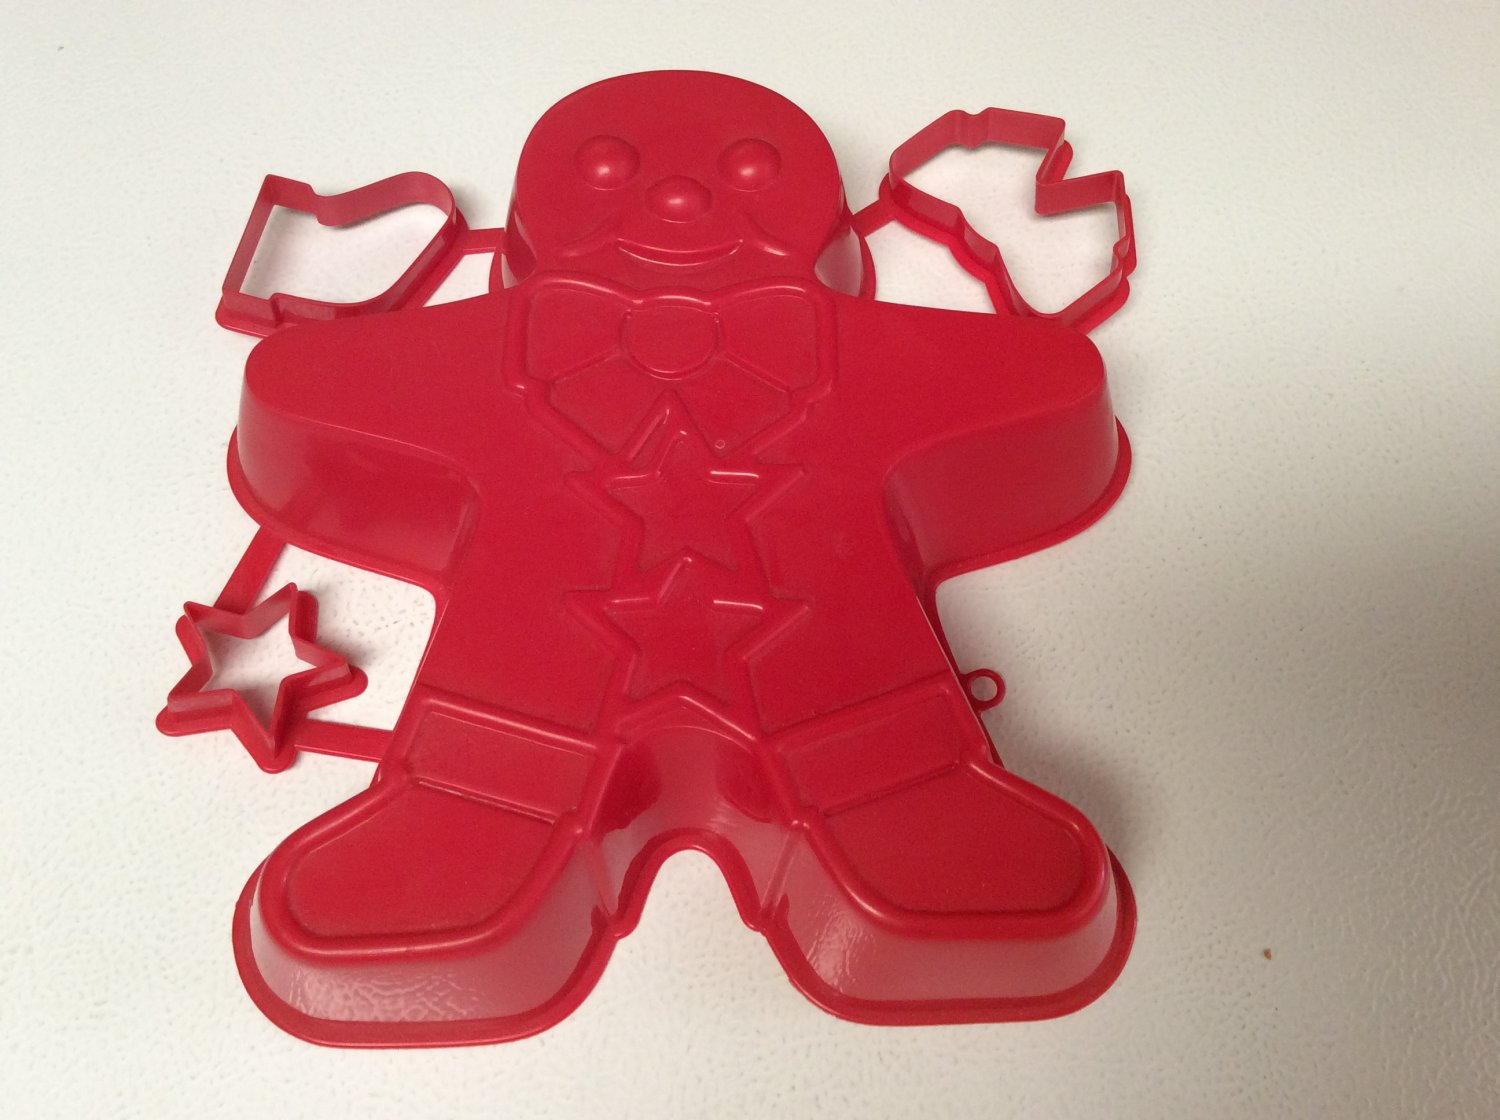 Red Gingerbread Man Mold with 3 cookie, jiggler cutters